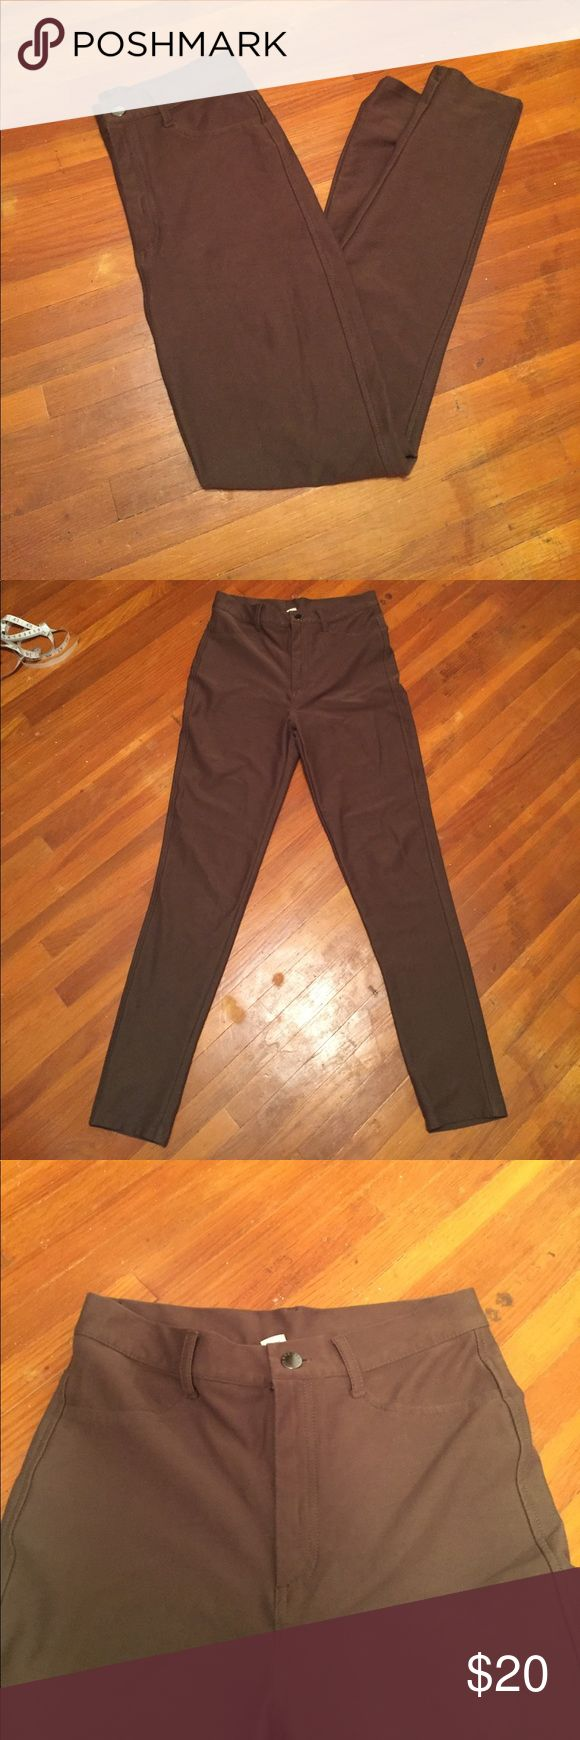 Brown Pants Brown high waisted pants from forever21. The pockets in the front are fake but the ones in the back are real. There's also a bit of a stretch to the pants. Gently used! Forever 21 Pants Skinny